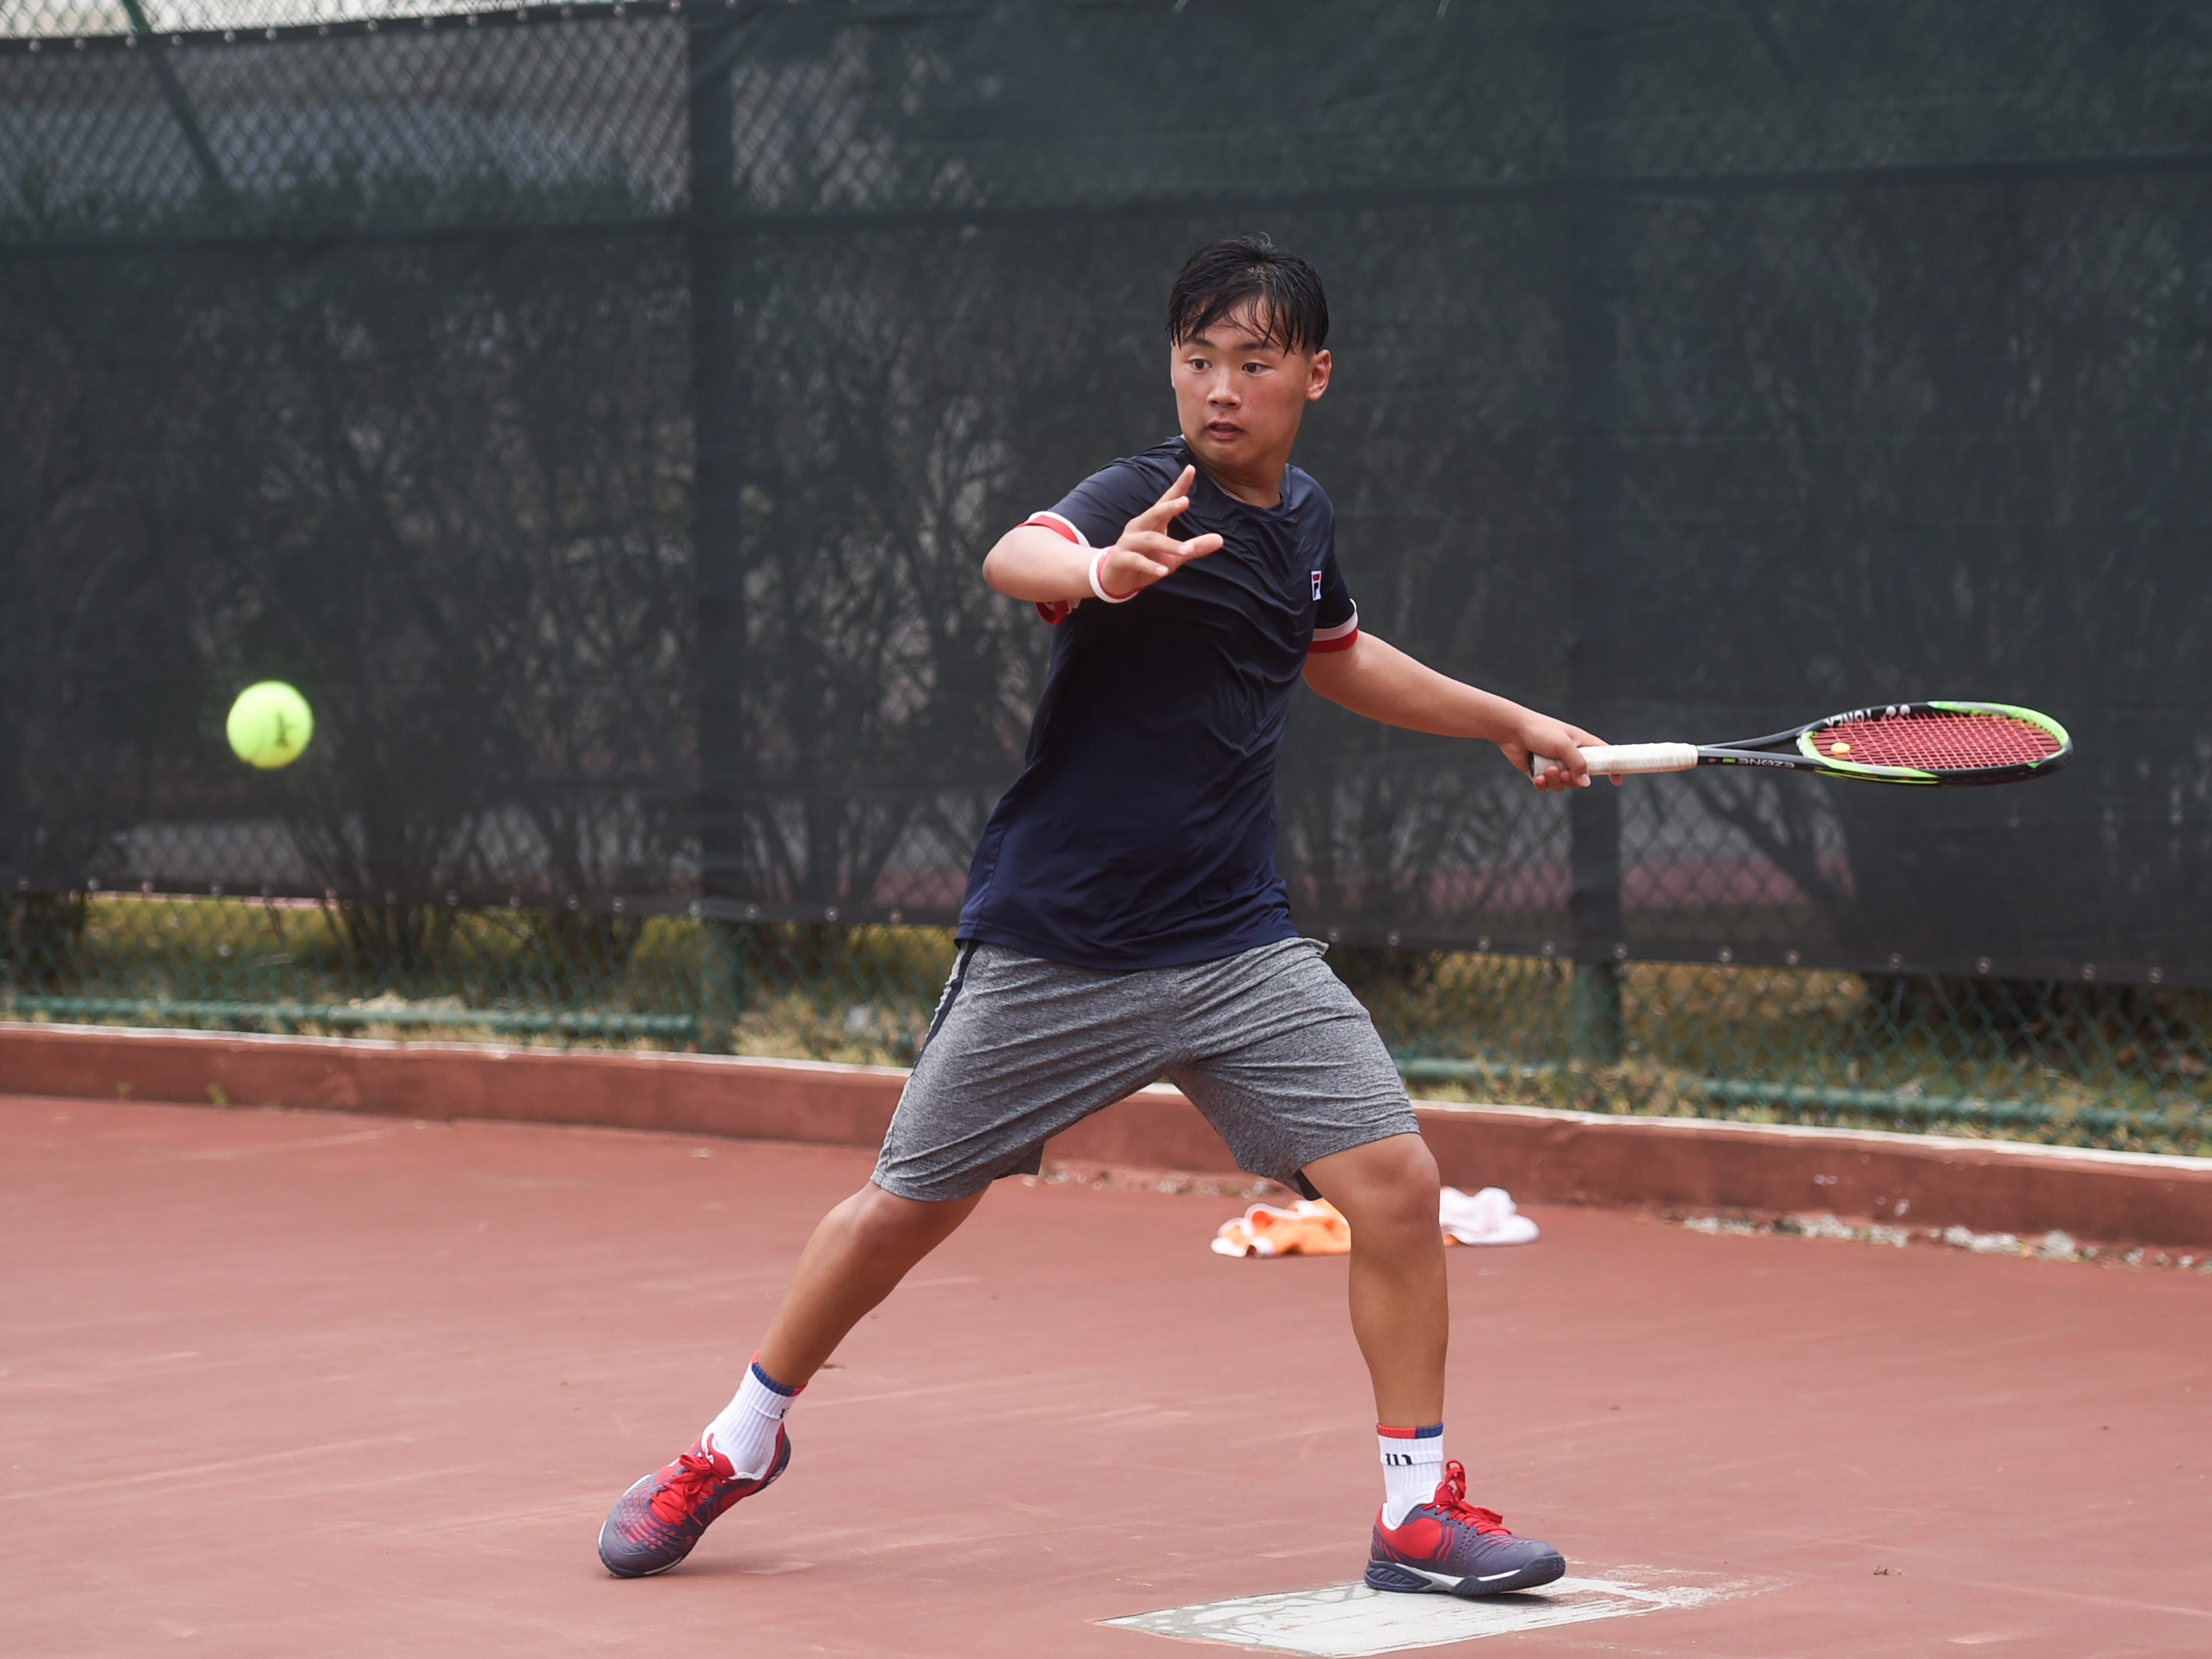 Seungik Park competes during a 2019 Chuck E Cheese ITF World Tennis Tour Juniors qualifying match at the Hilton Guam Resort and Spa in Tumon, May 12, 2019.